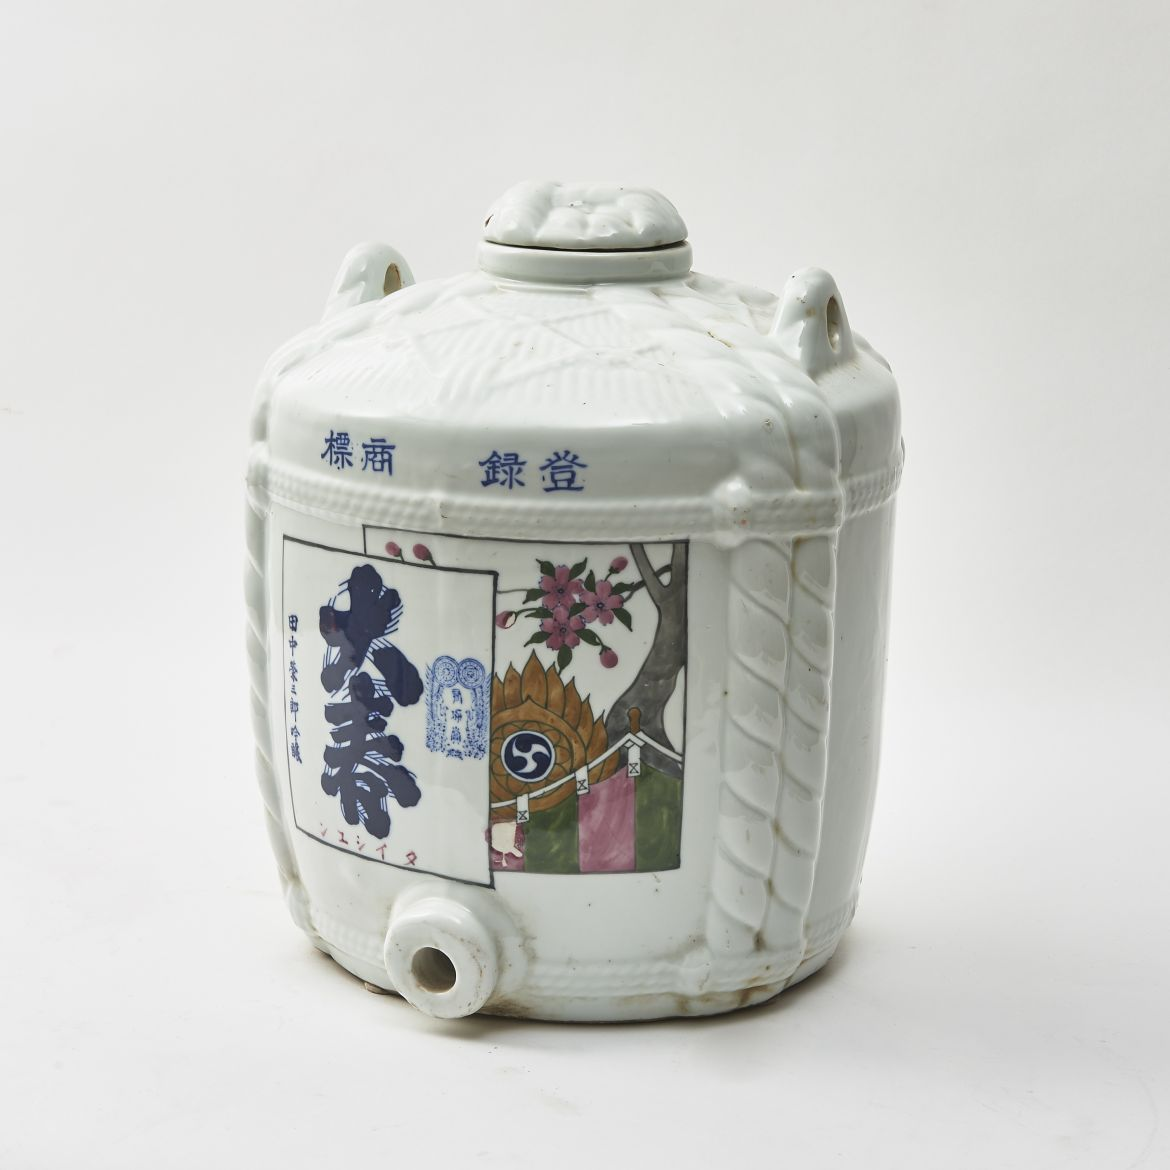 Japanese Sake Bottle With Blossom Detail